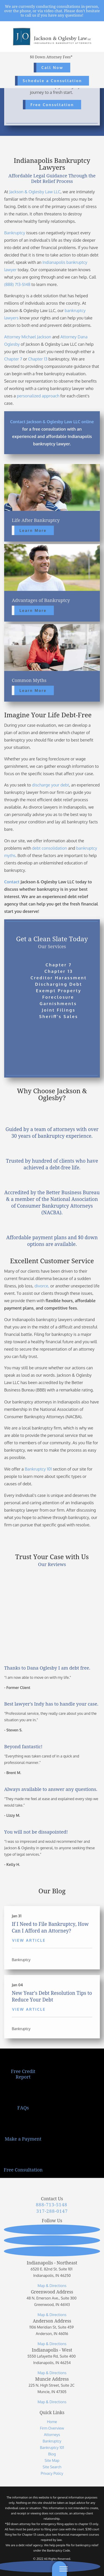 Jackson & Oglesby Law LLC - Indianapolis IN Lawyers